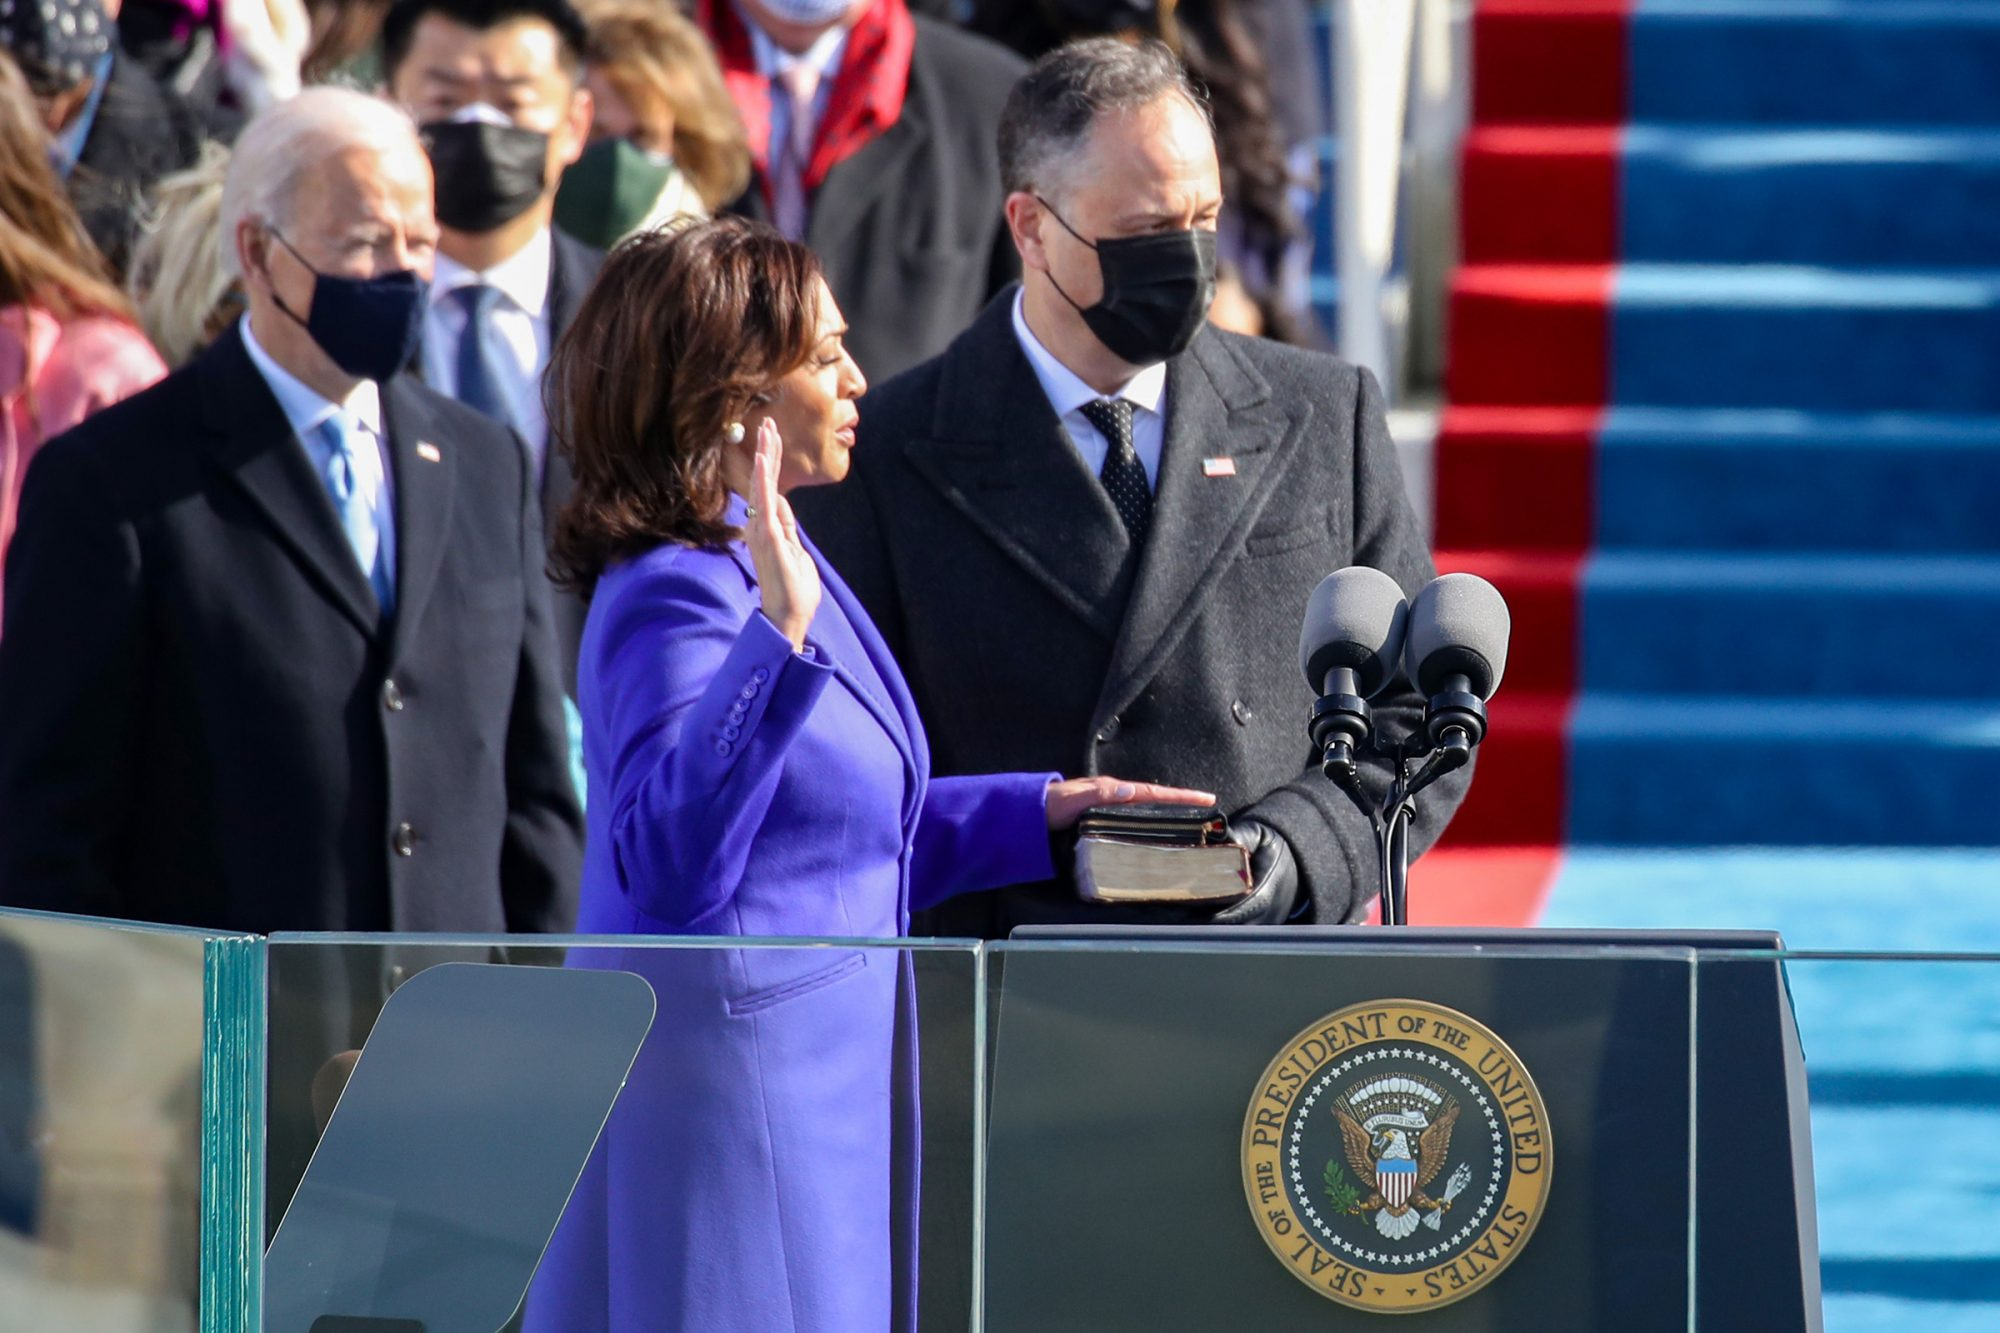 Kamala Harris is sworn in as Vice President of the United States as her husband Doug Emhoff looks on during the inauguration of U.S. President-elect Joe Biden on the West Front of the U.S. Capitol on January 20, 2021 in Washington